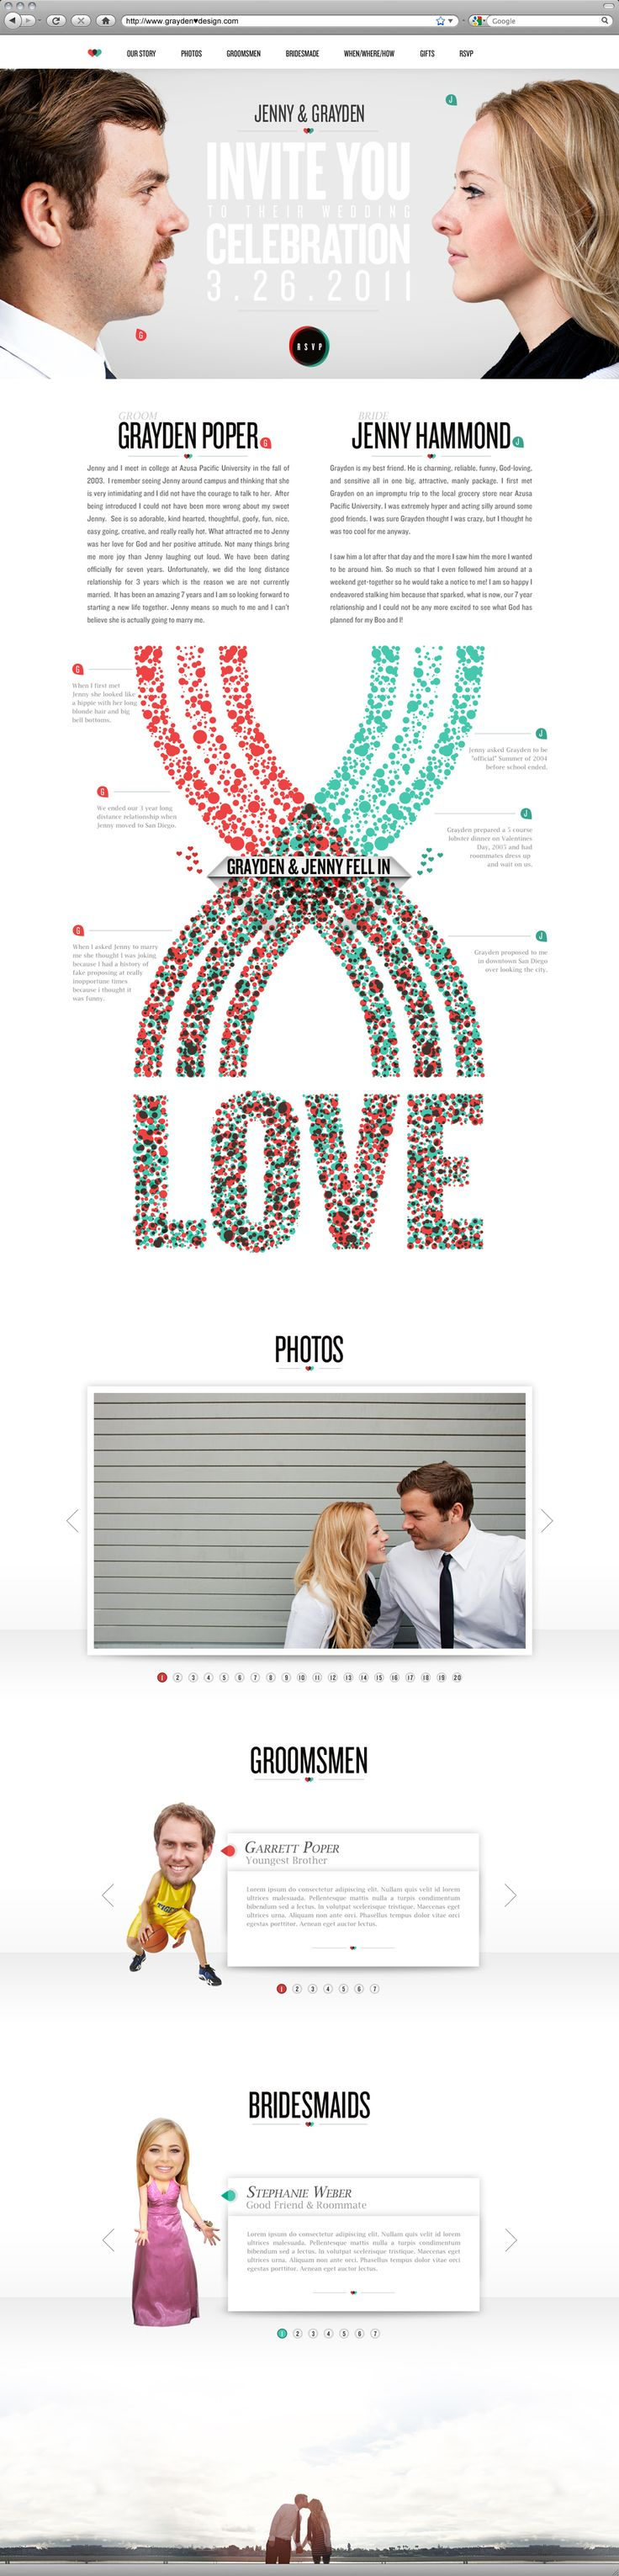 This is a wedding website and it's reaaaaally cool. webdesign